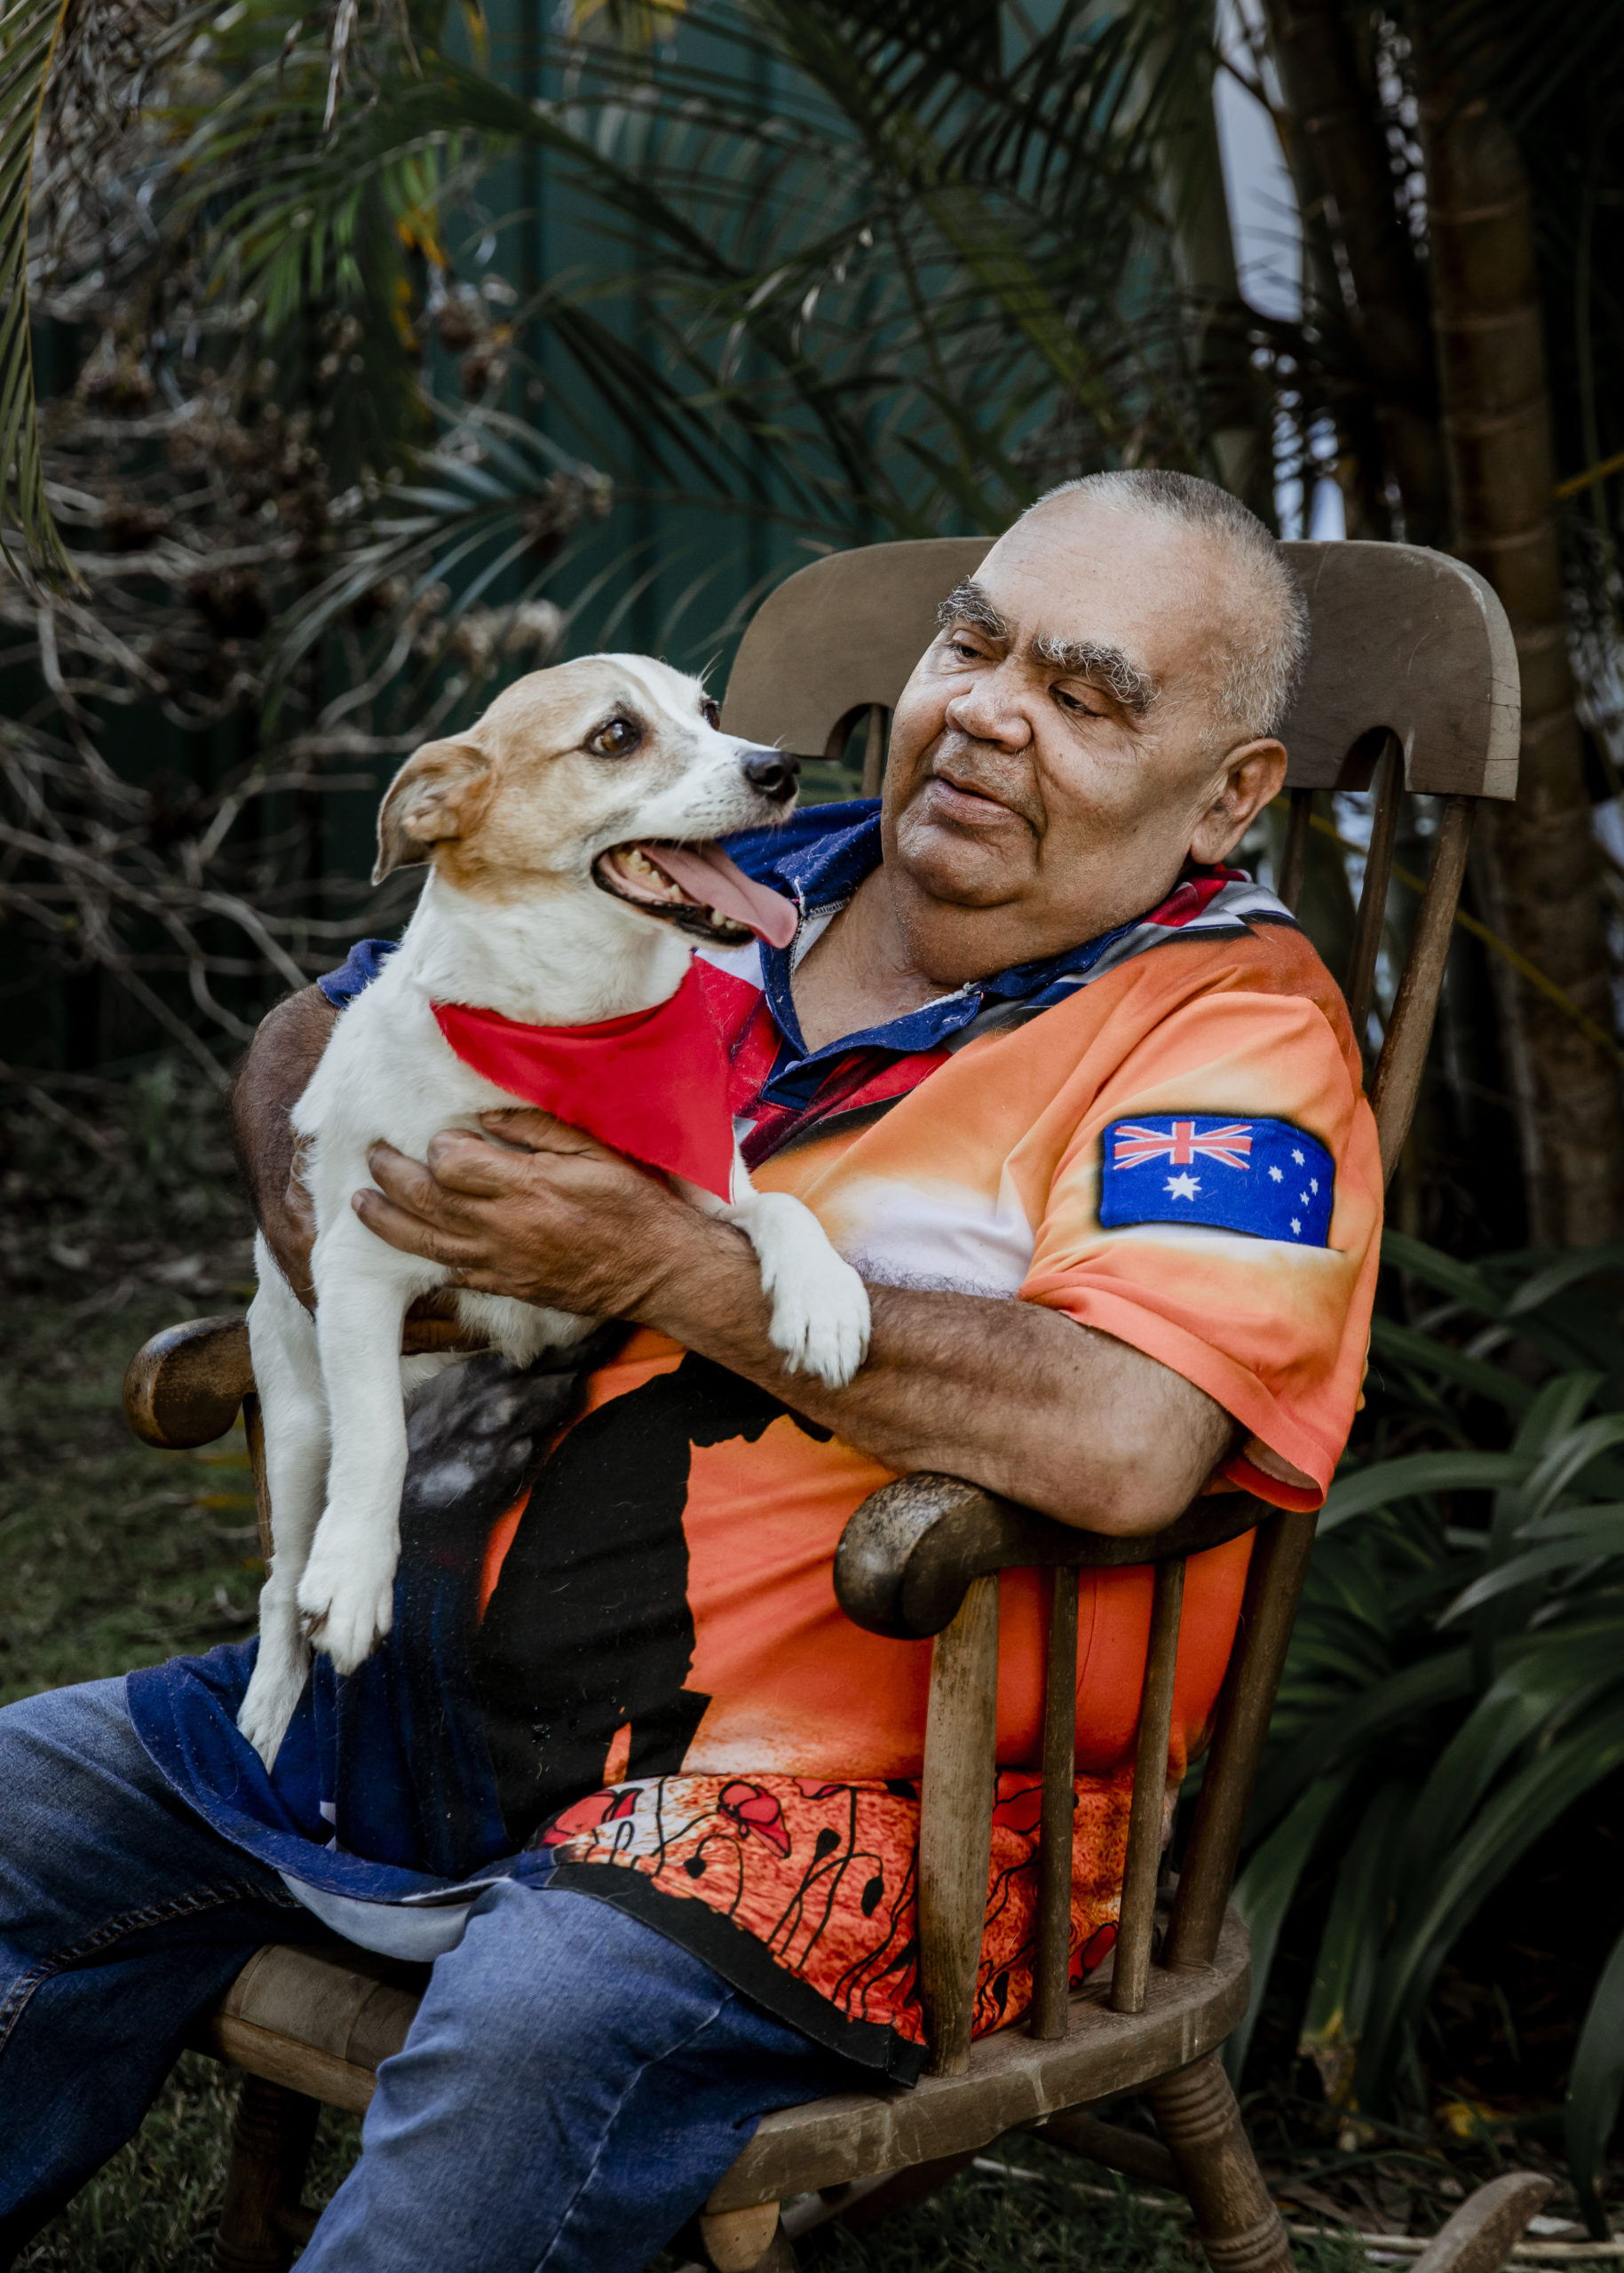 JP_6001-scaled | RSL LifeCare - provide care and service to war veterans, retirement villages and accommodation, aged care services and assisted living